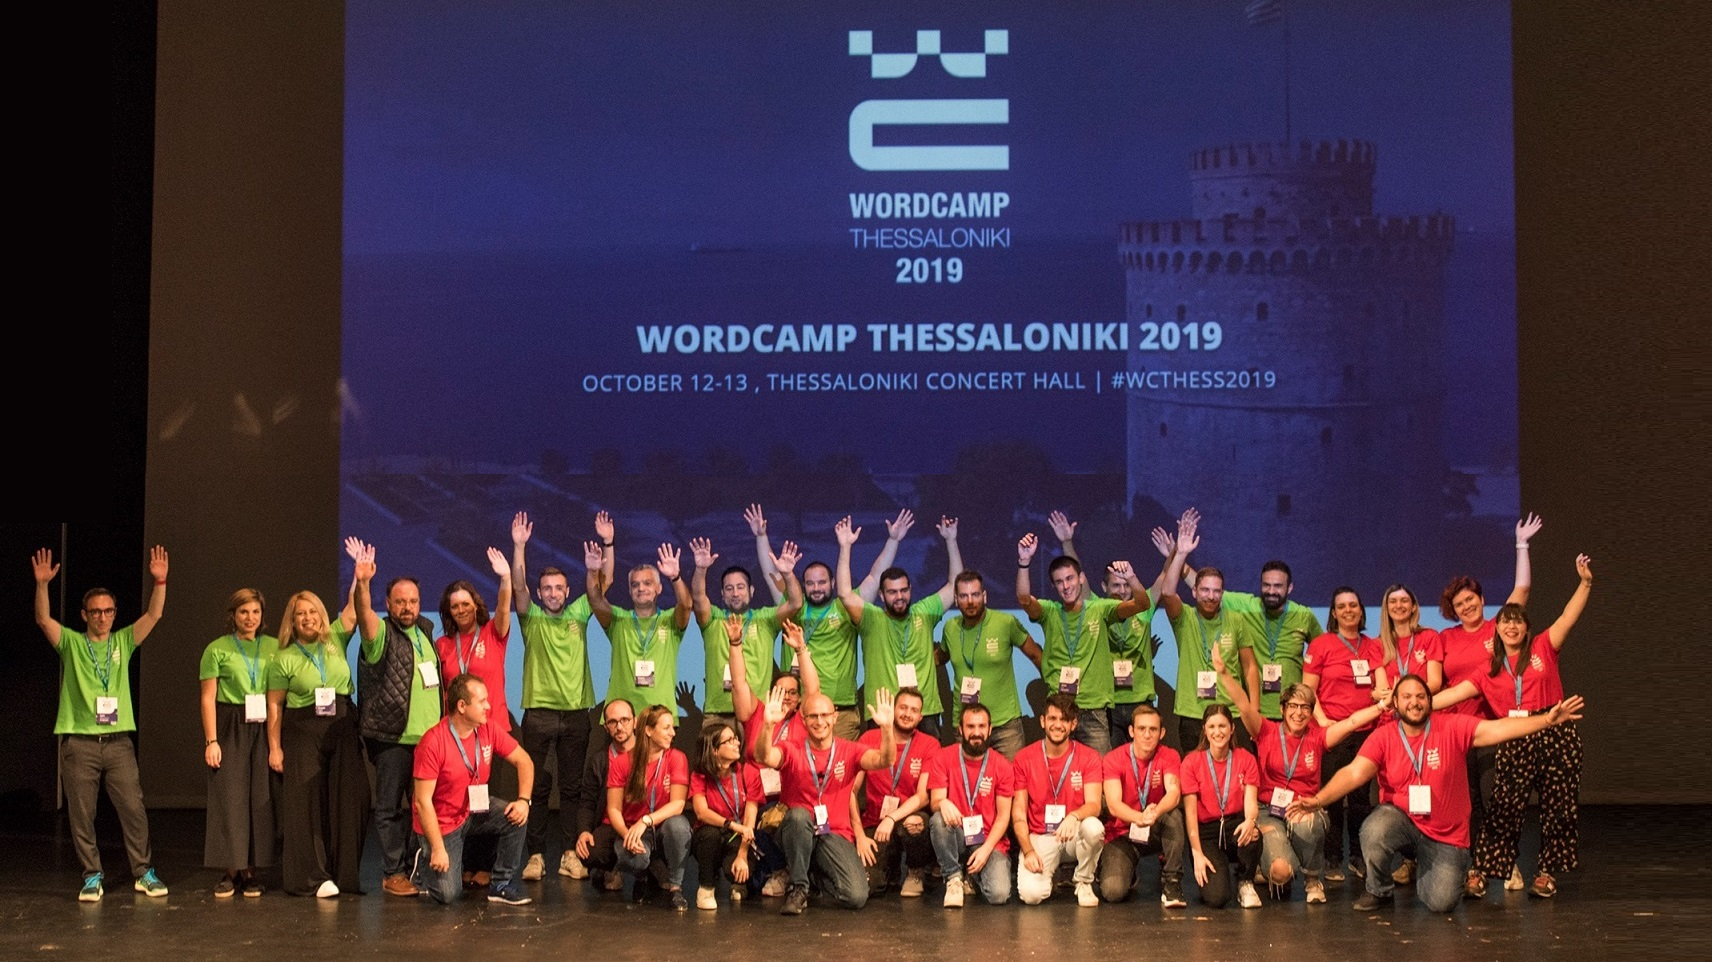 Enjoy all the presentations of WordCamp Thessaloniki #WCThess2019